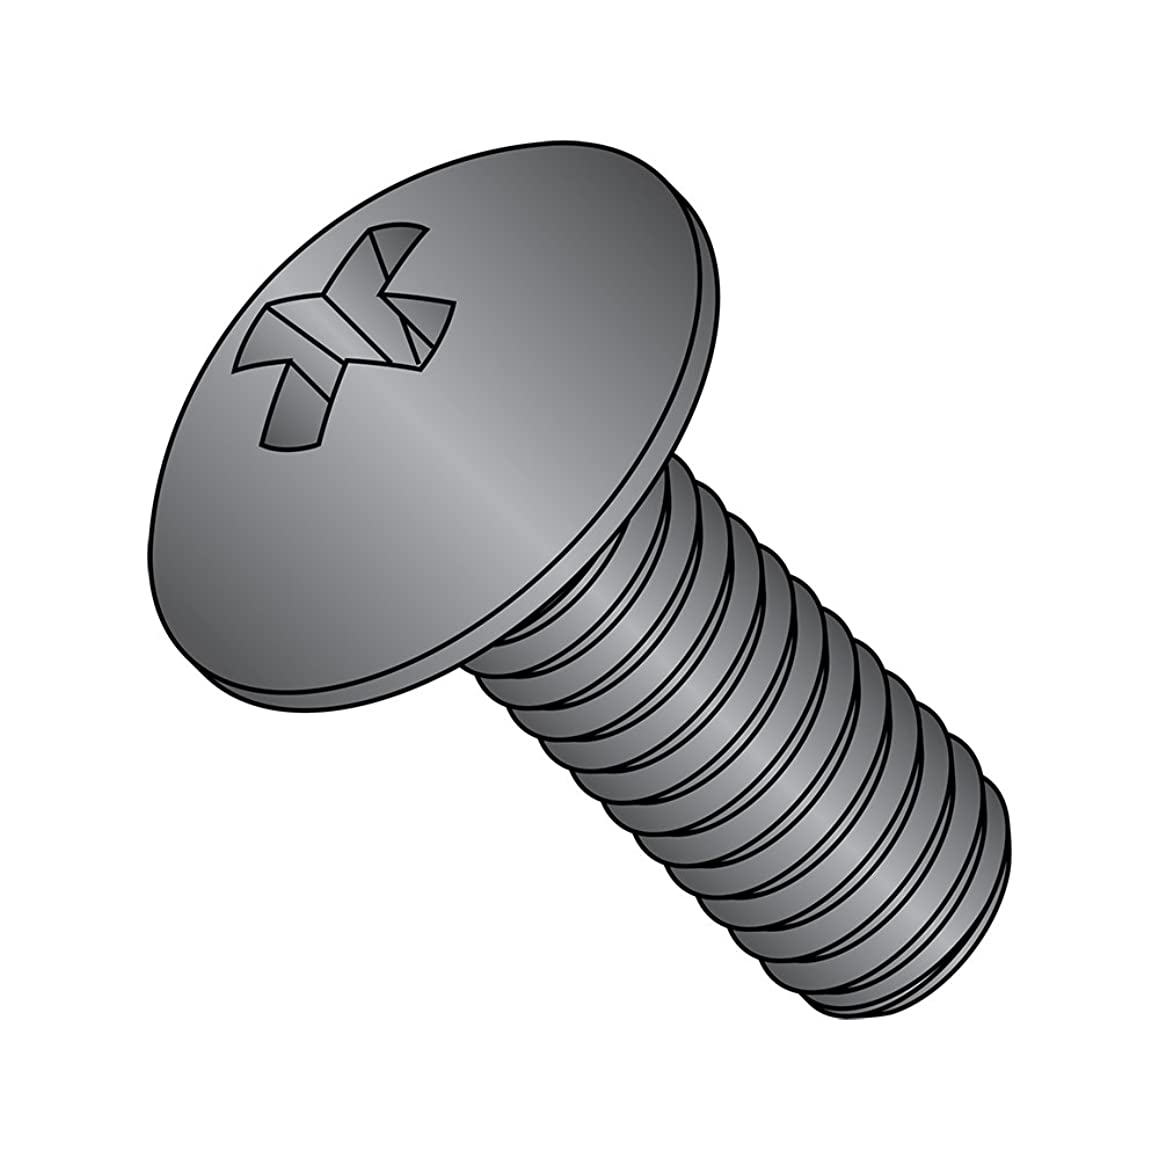 18-8 Stainless Steel Truss Head Machine Screw, Black Oxide Finish, Meets ASME B18.6.3, #1 Phillips Drive, #4-40 Thread Size, 1/4